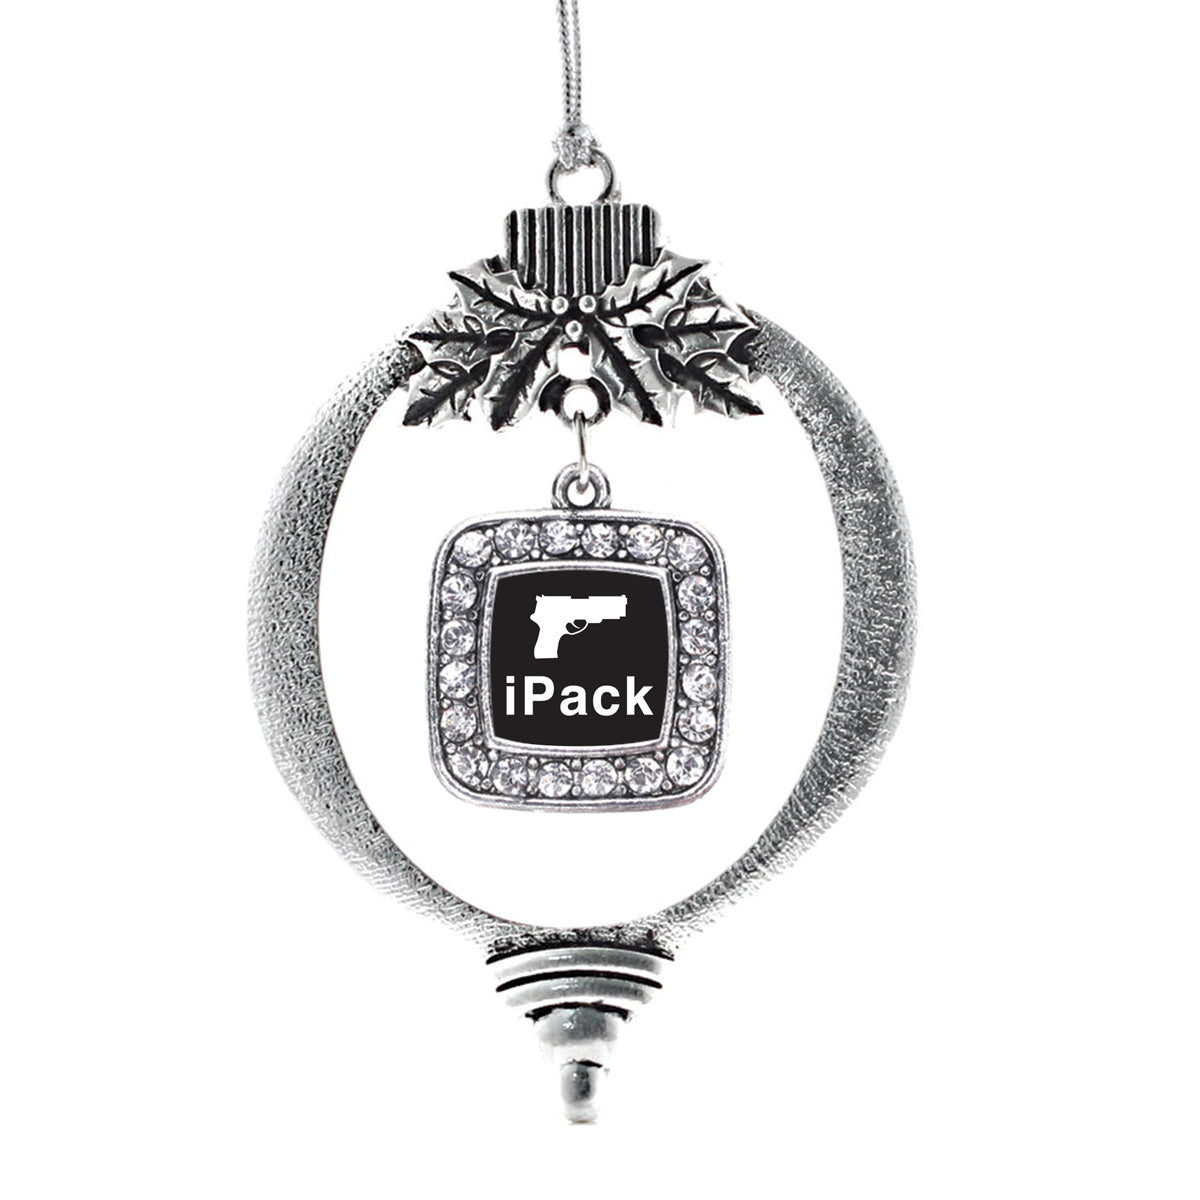 iPack Square Charm Christmas / Holiday Ornament